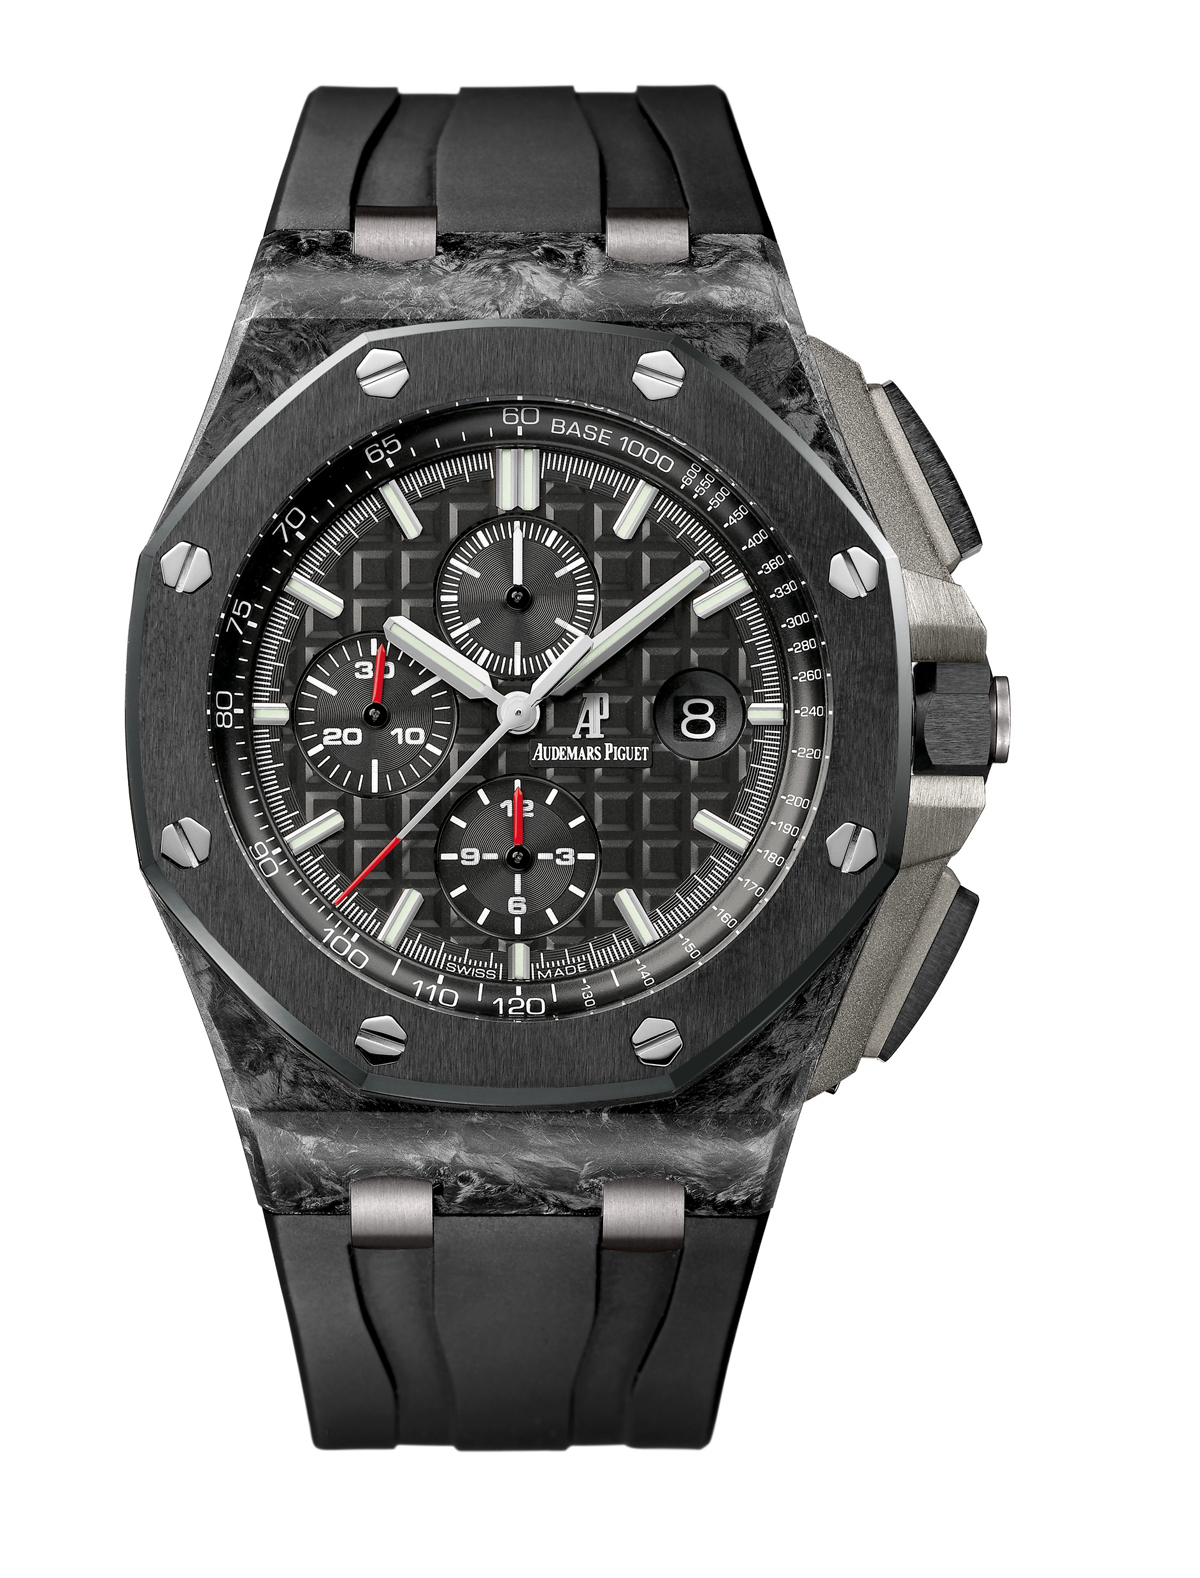 Royal Oak Offshore Chronograph in forged carbon